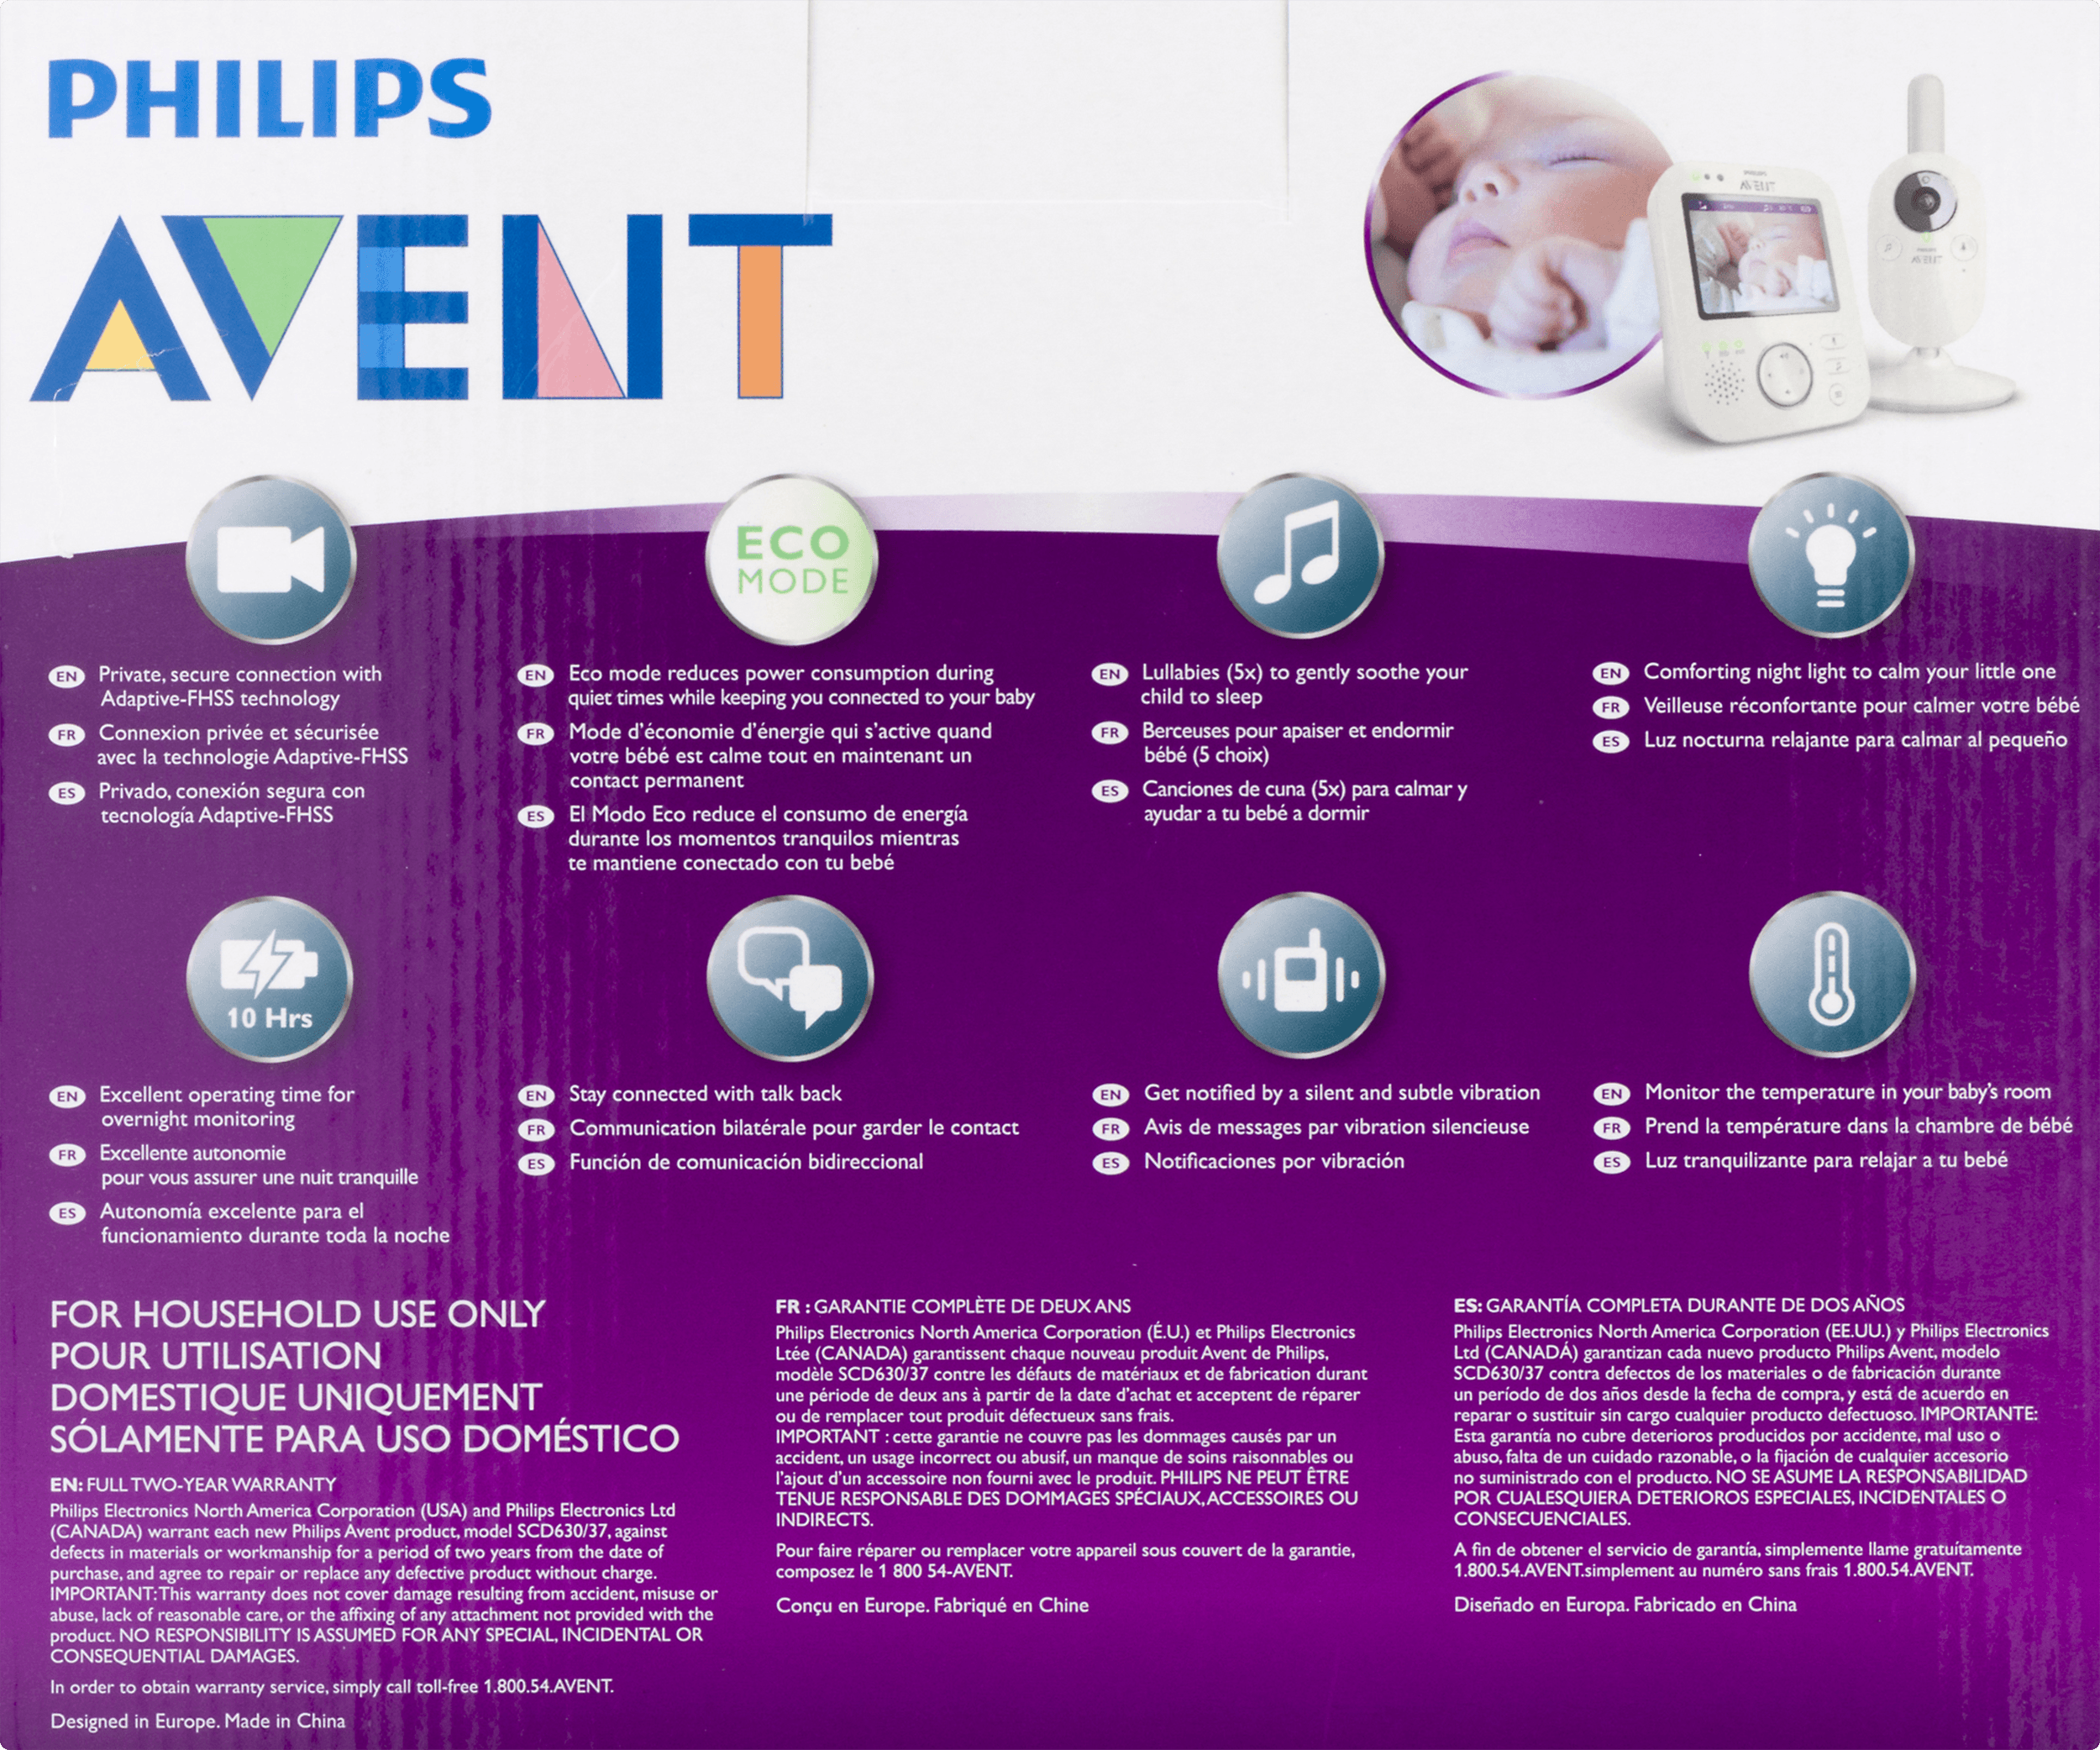 Philips Avent Digital Video Baby Monitor With FHSS, SCD630/37   Walmart.com